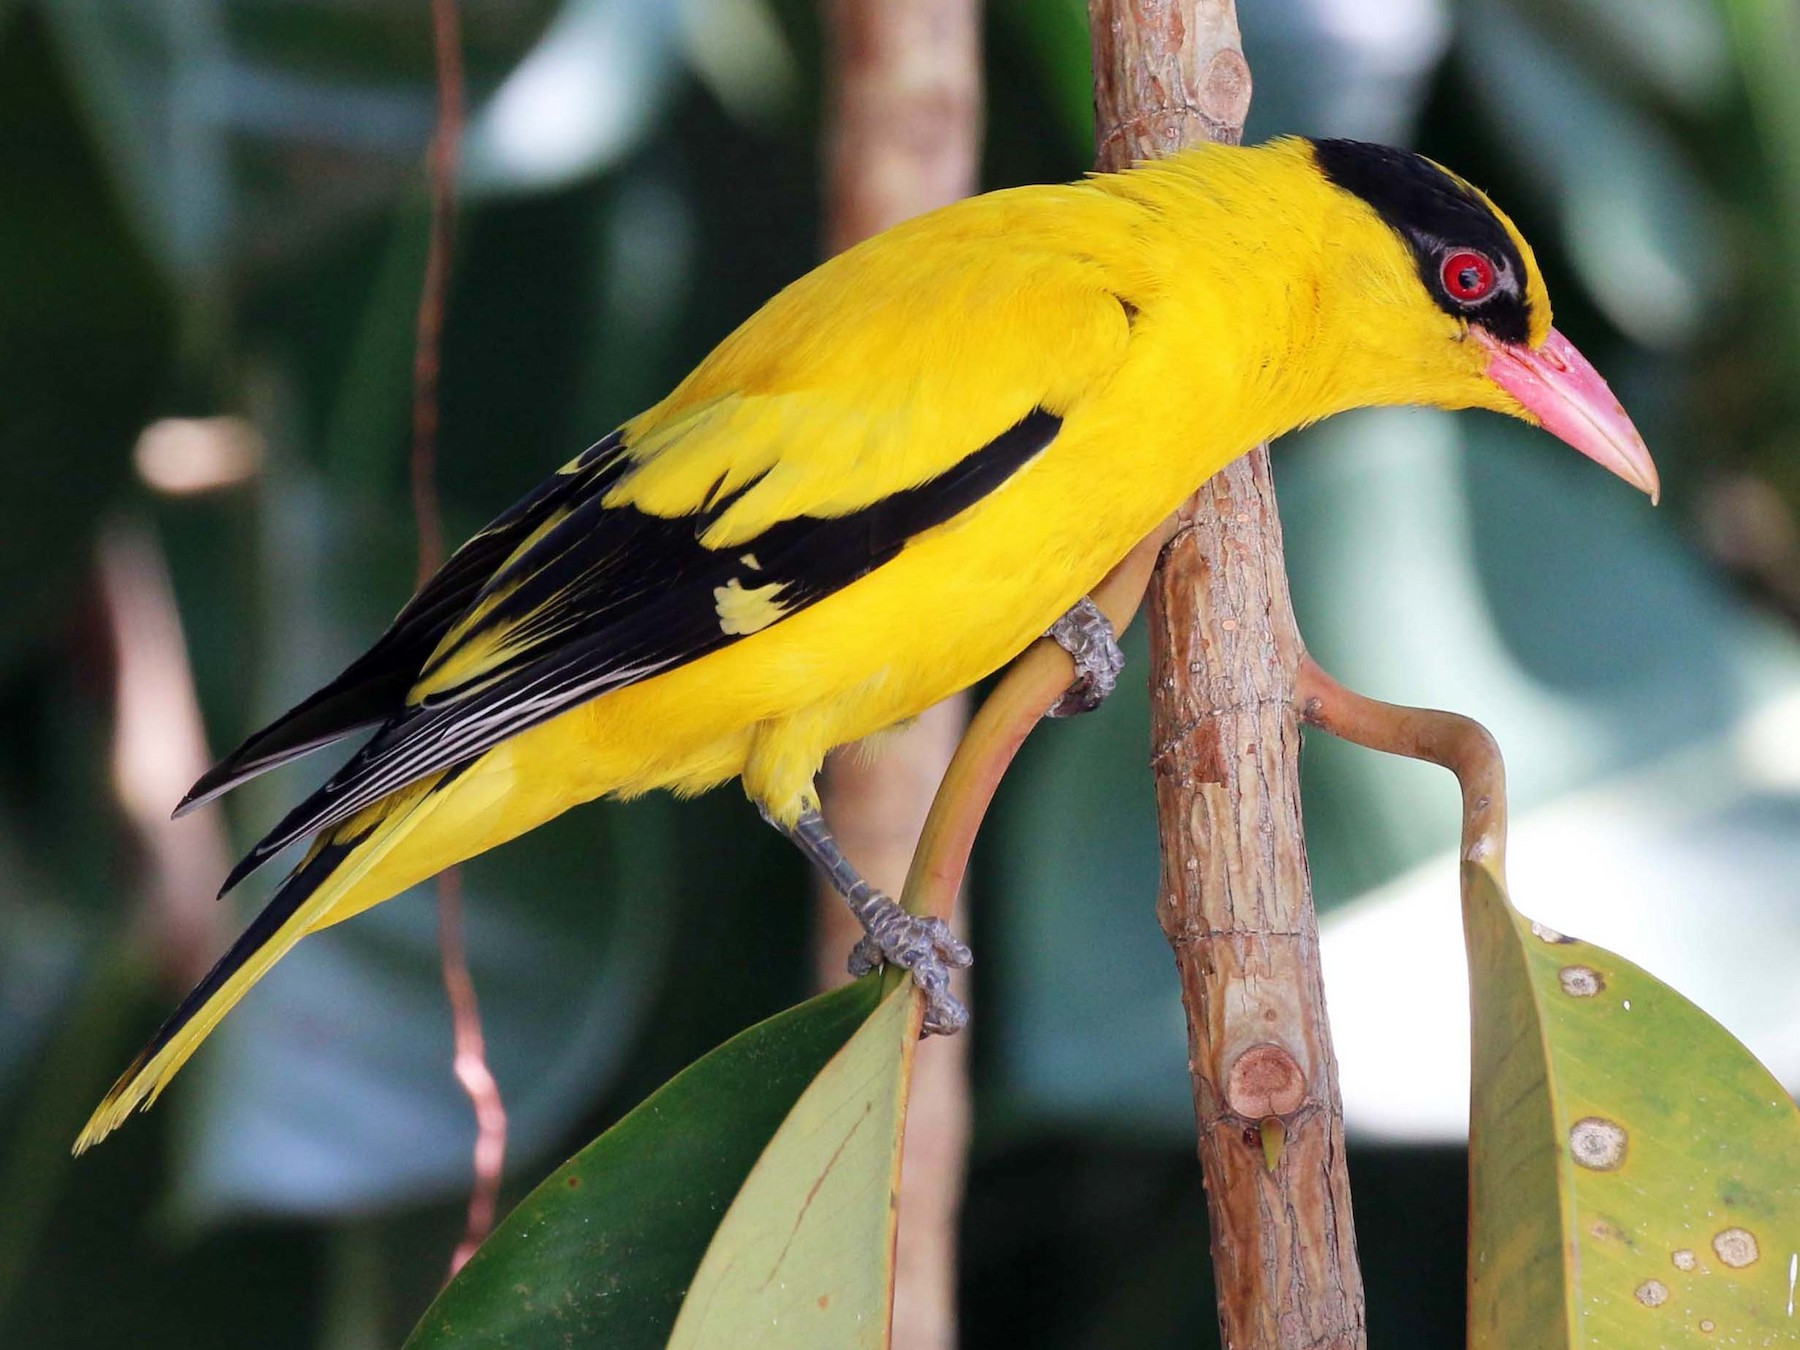 Black-naped Oriole - Neoh Hor Kee